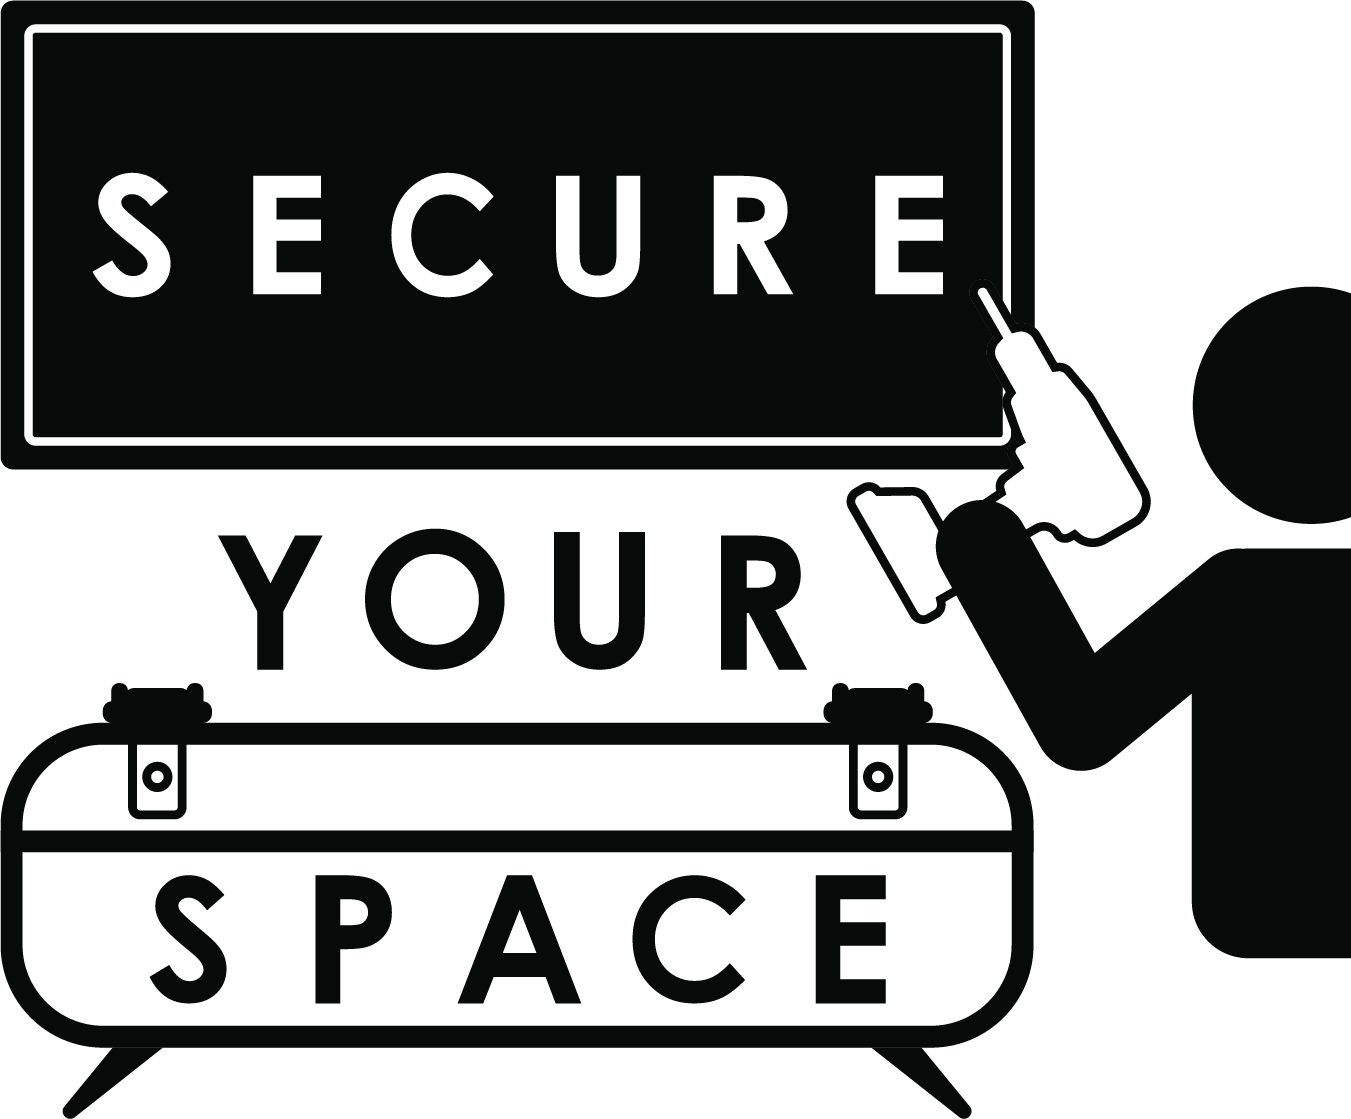 Secure Your Space logo in black and white